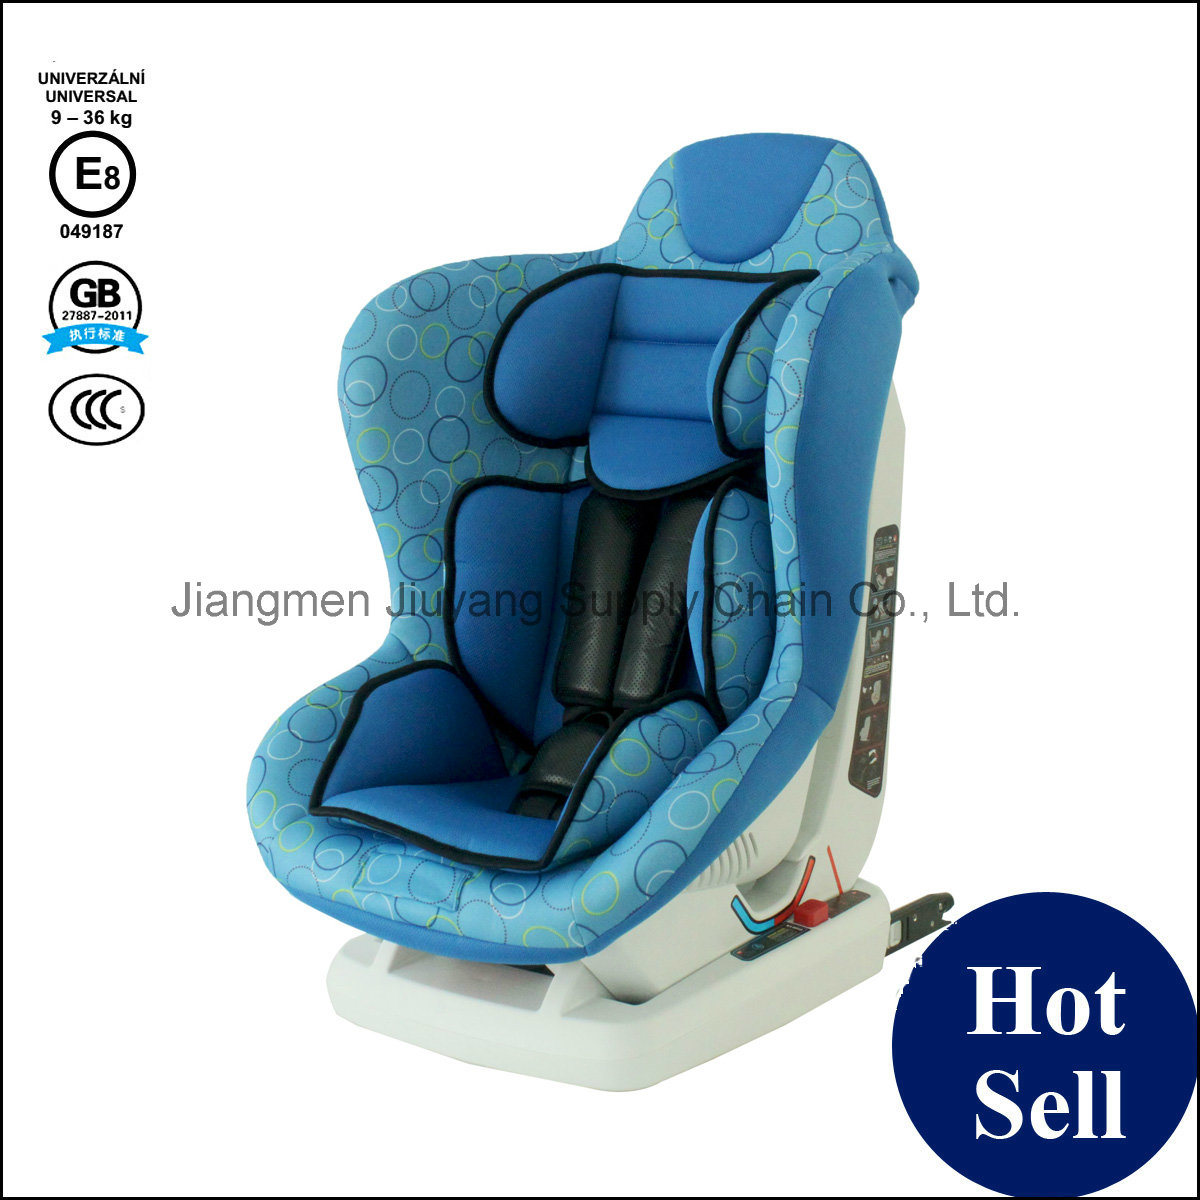 Baby Safety Car Seat with ECE GB 3c Certification - Free Sample